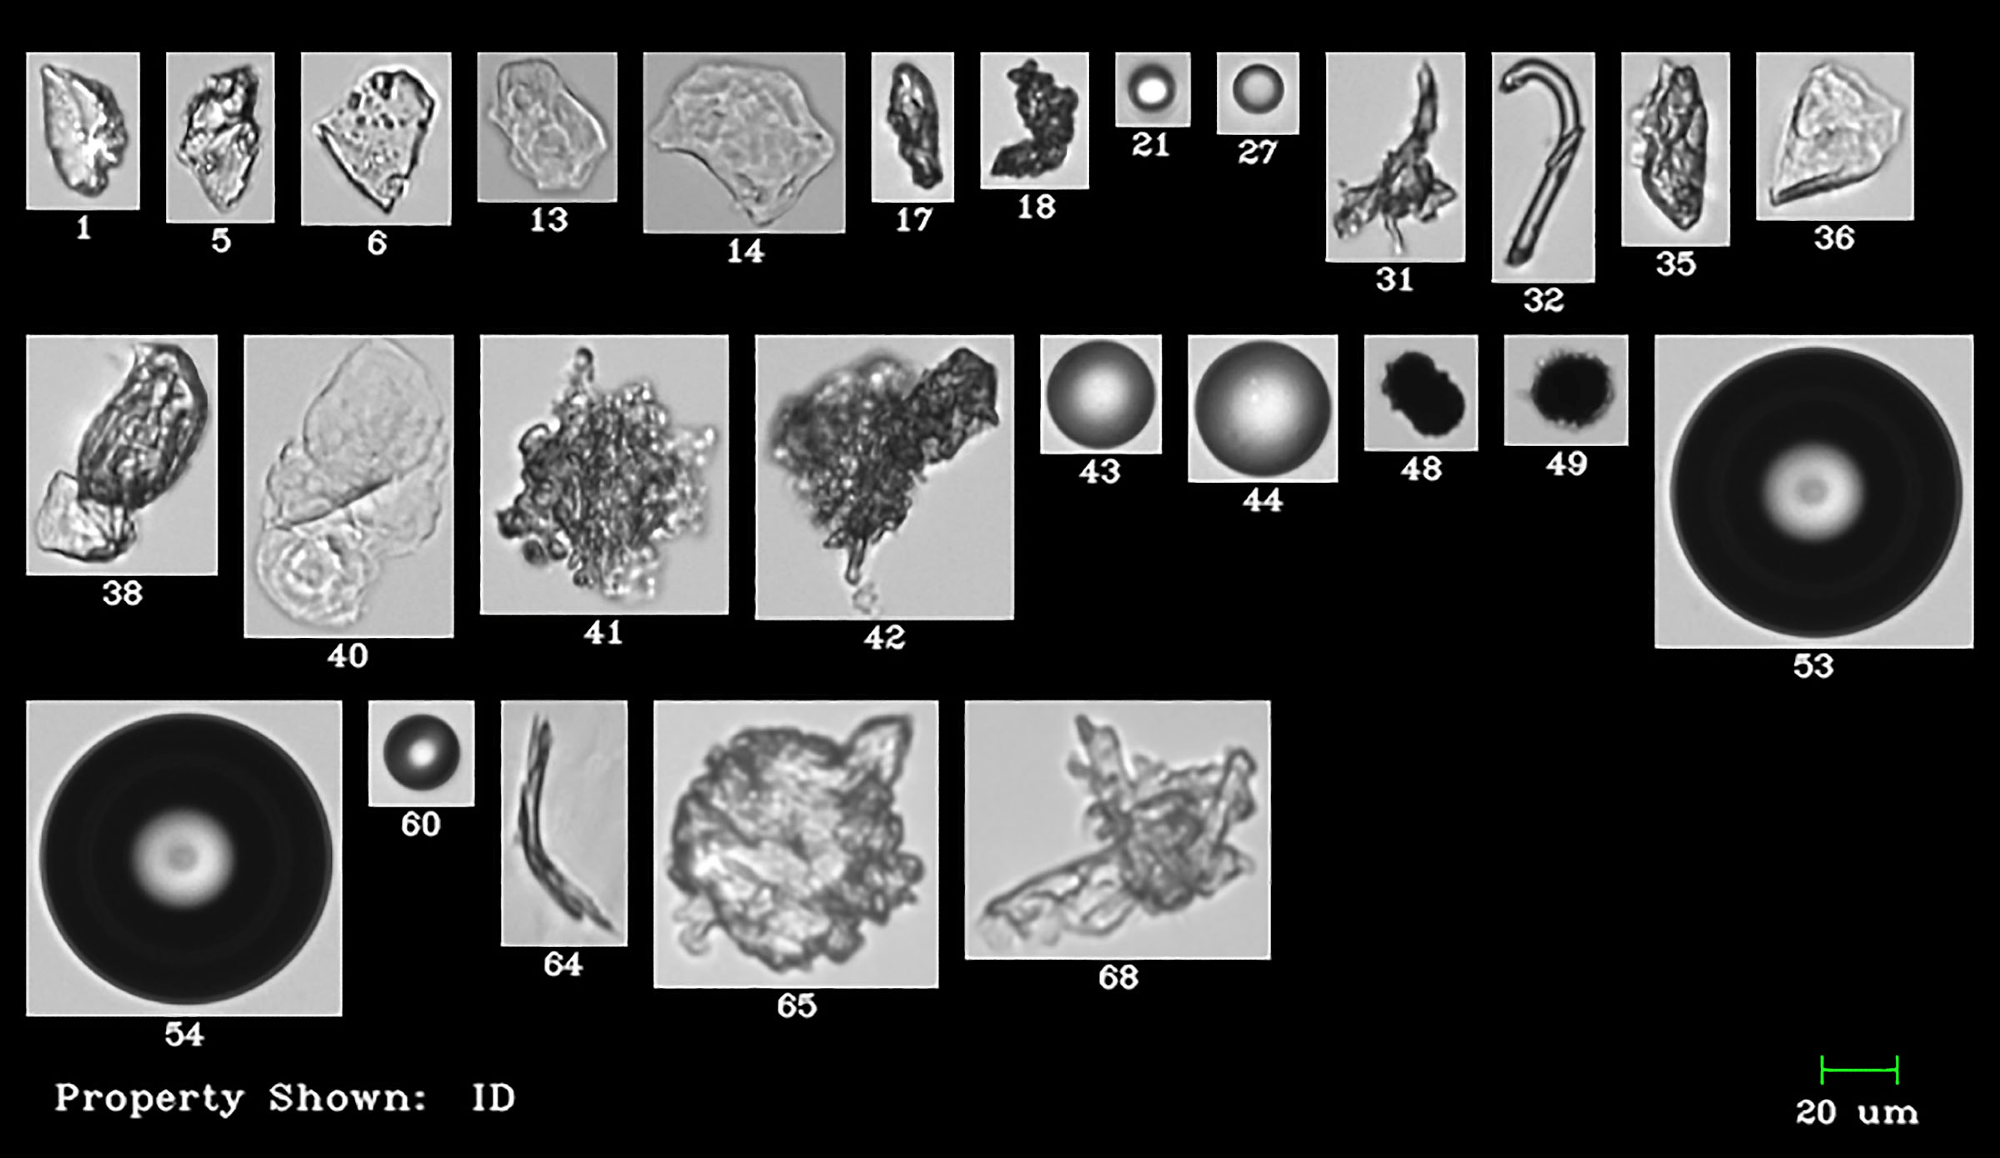 Intrinsic and extrinsic particles imaged by the FlowCam: protein aggregates, glass shards, silicone oil droplets, and other particulate.